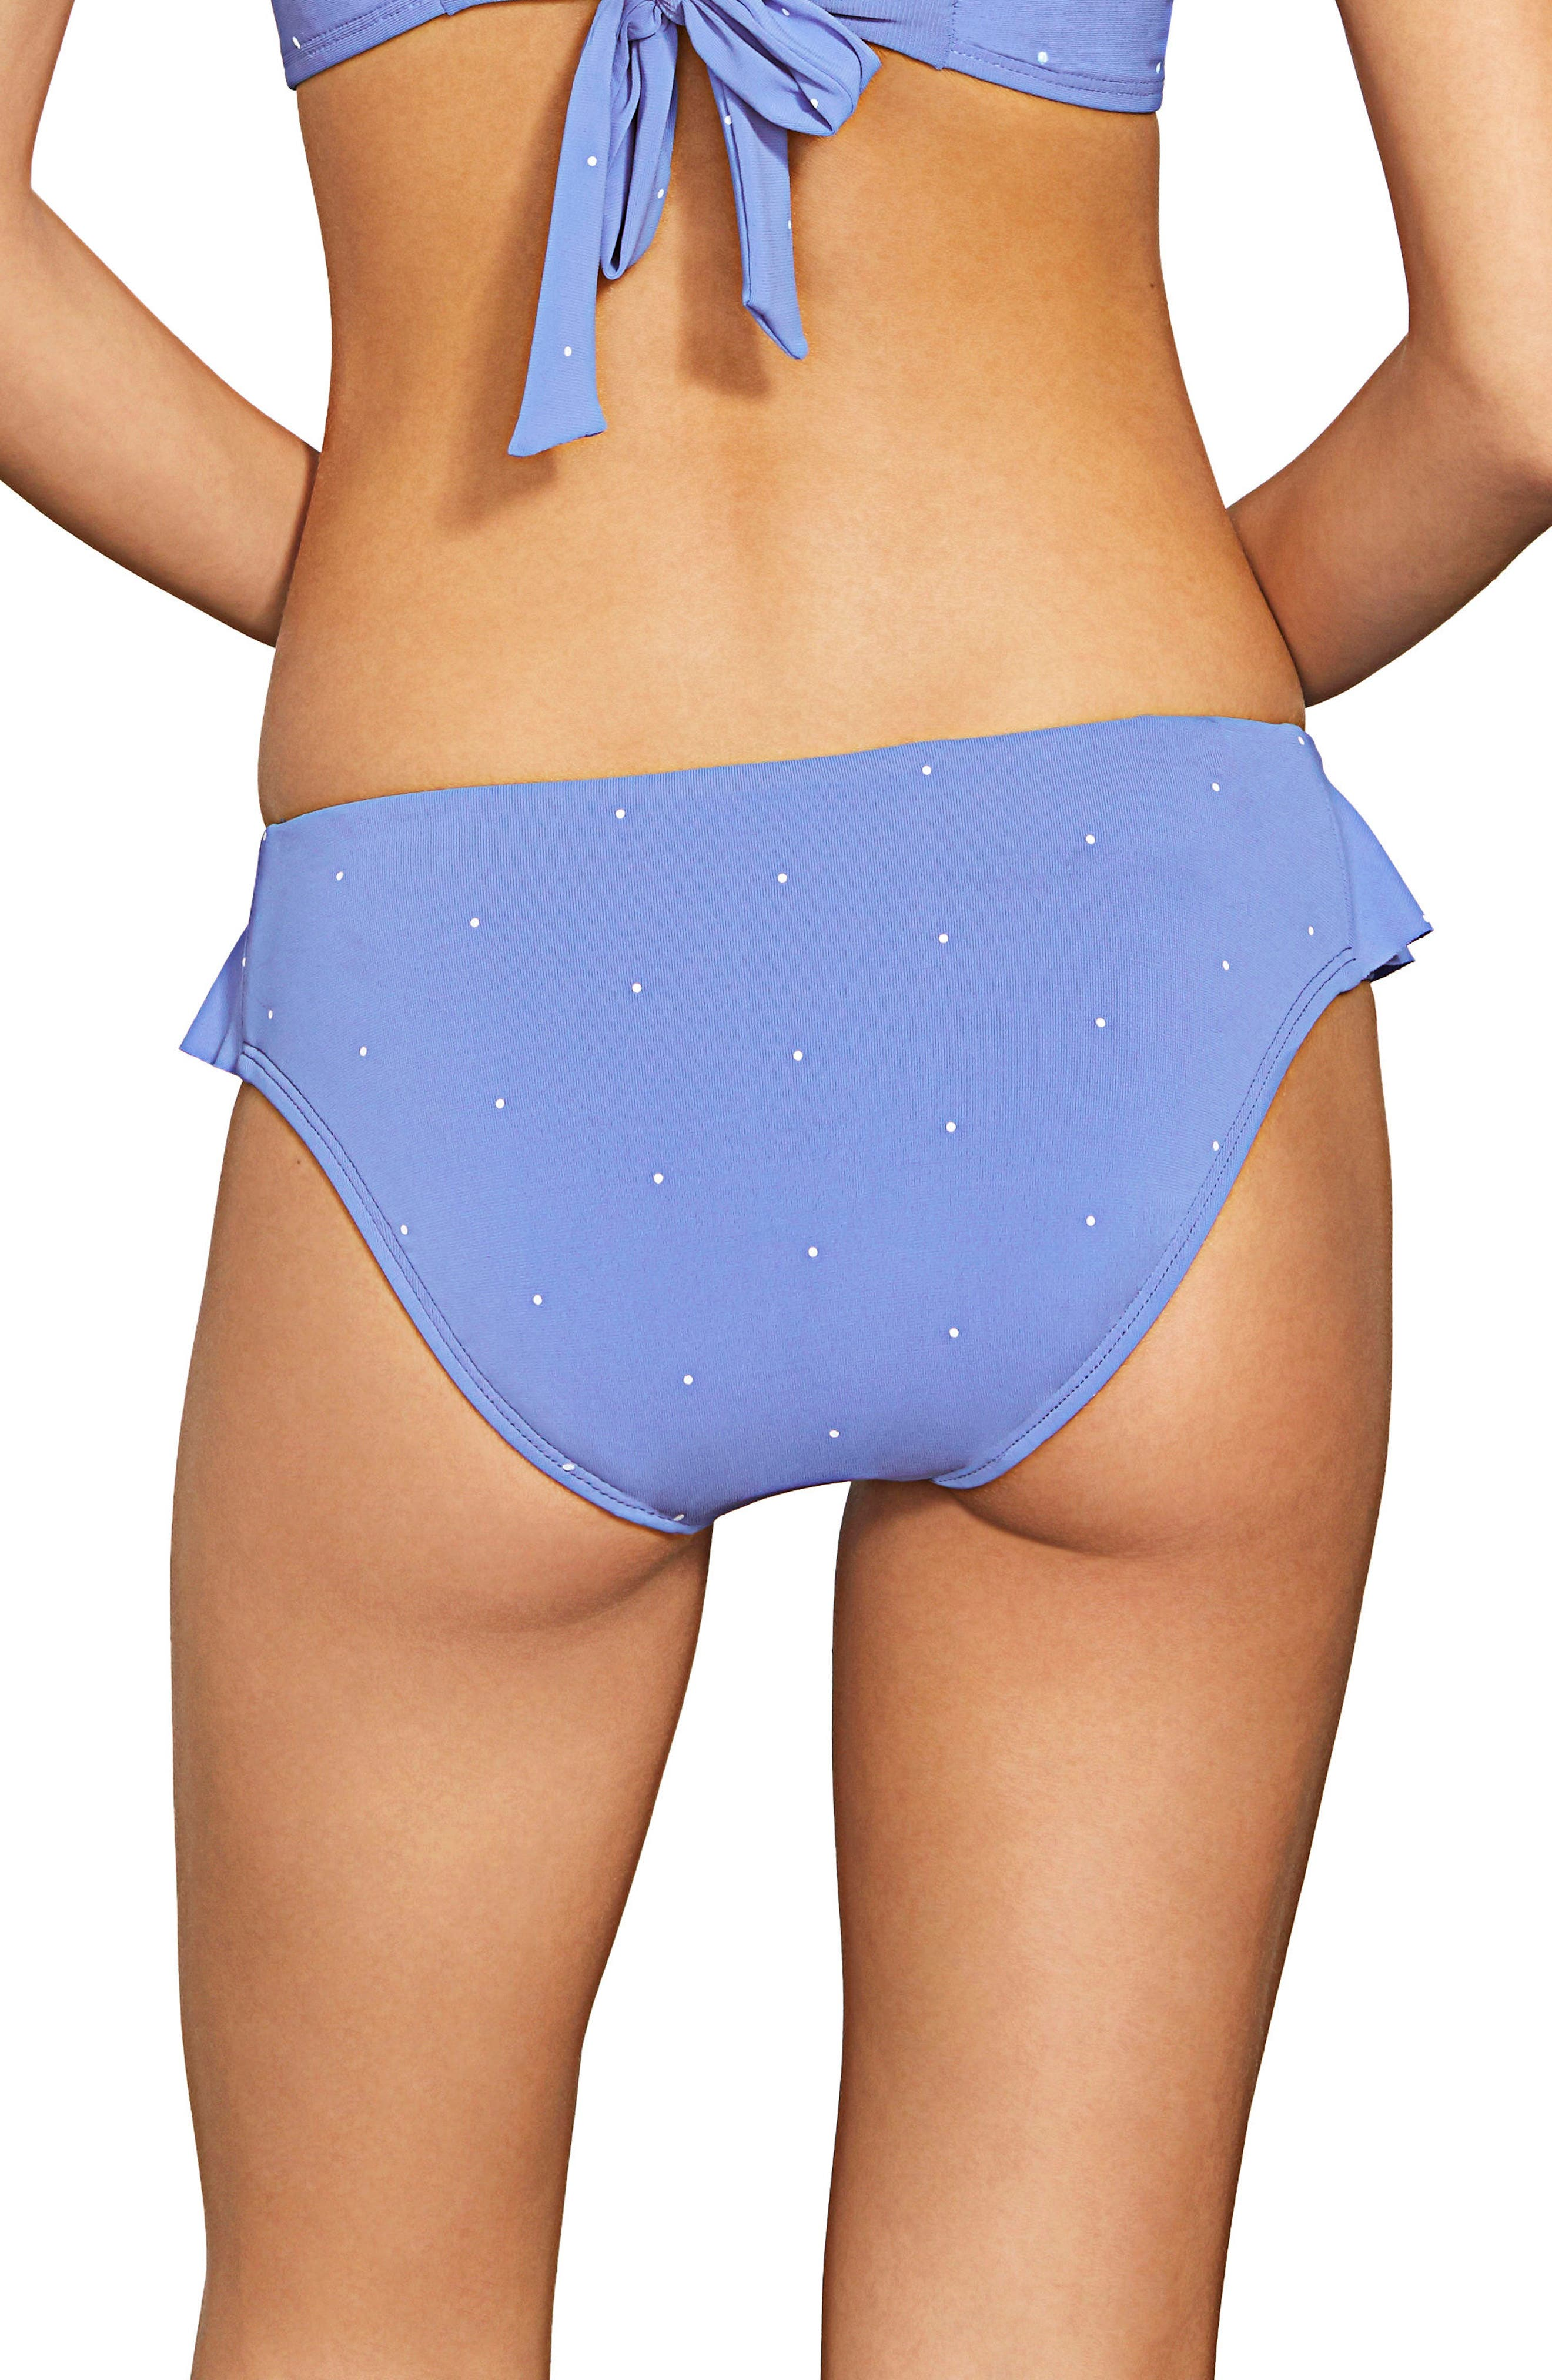 Jennie Ruffle Bikini Bottoms,                             Alternate thumbnail 2, color,                             PERIWINKLE